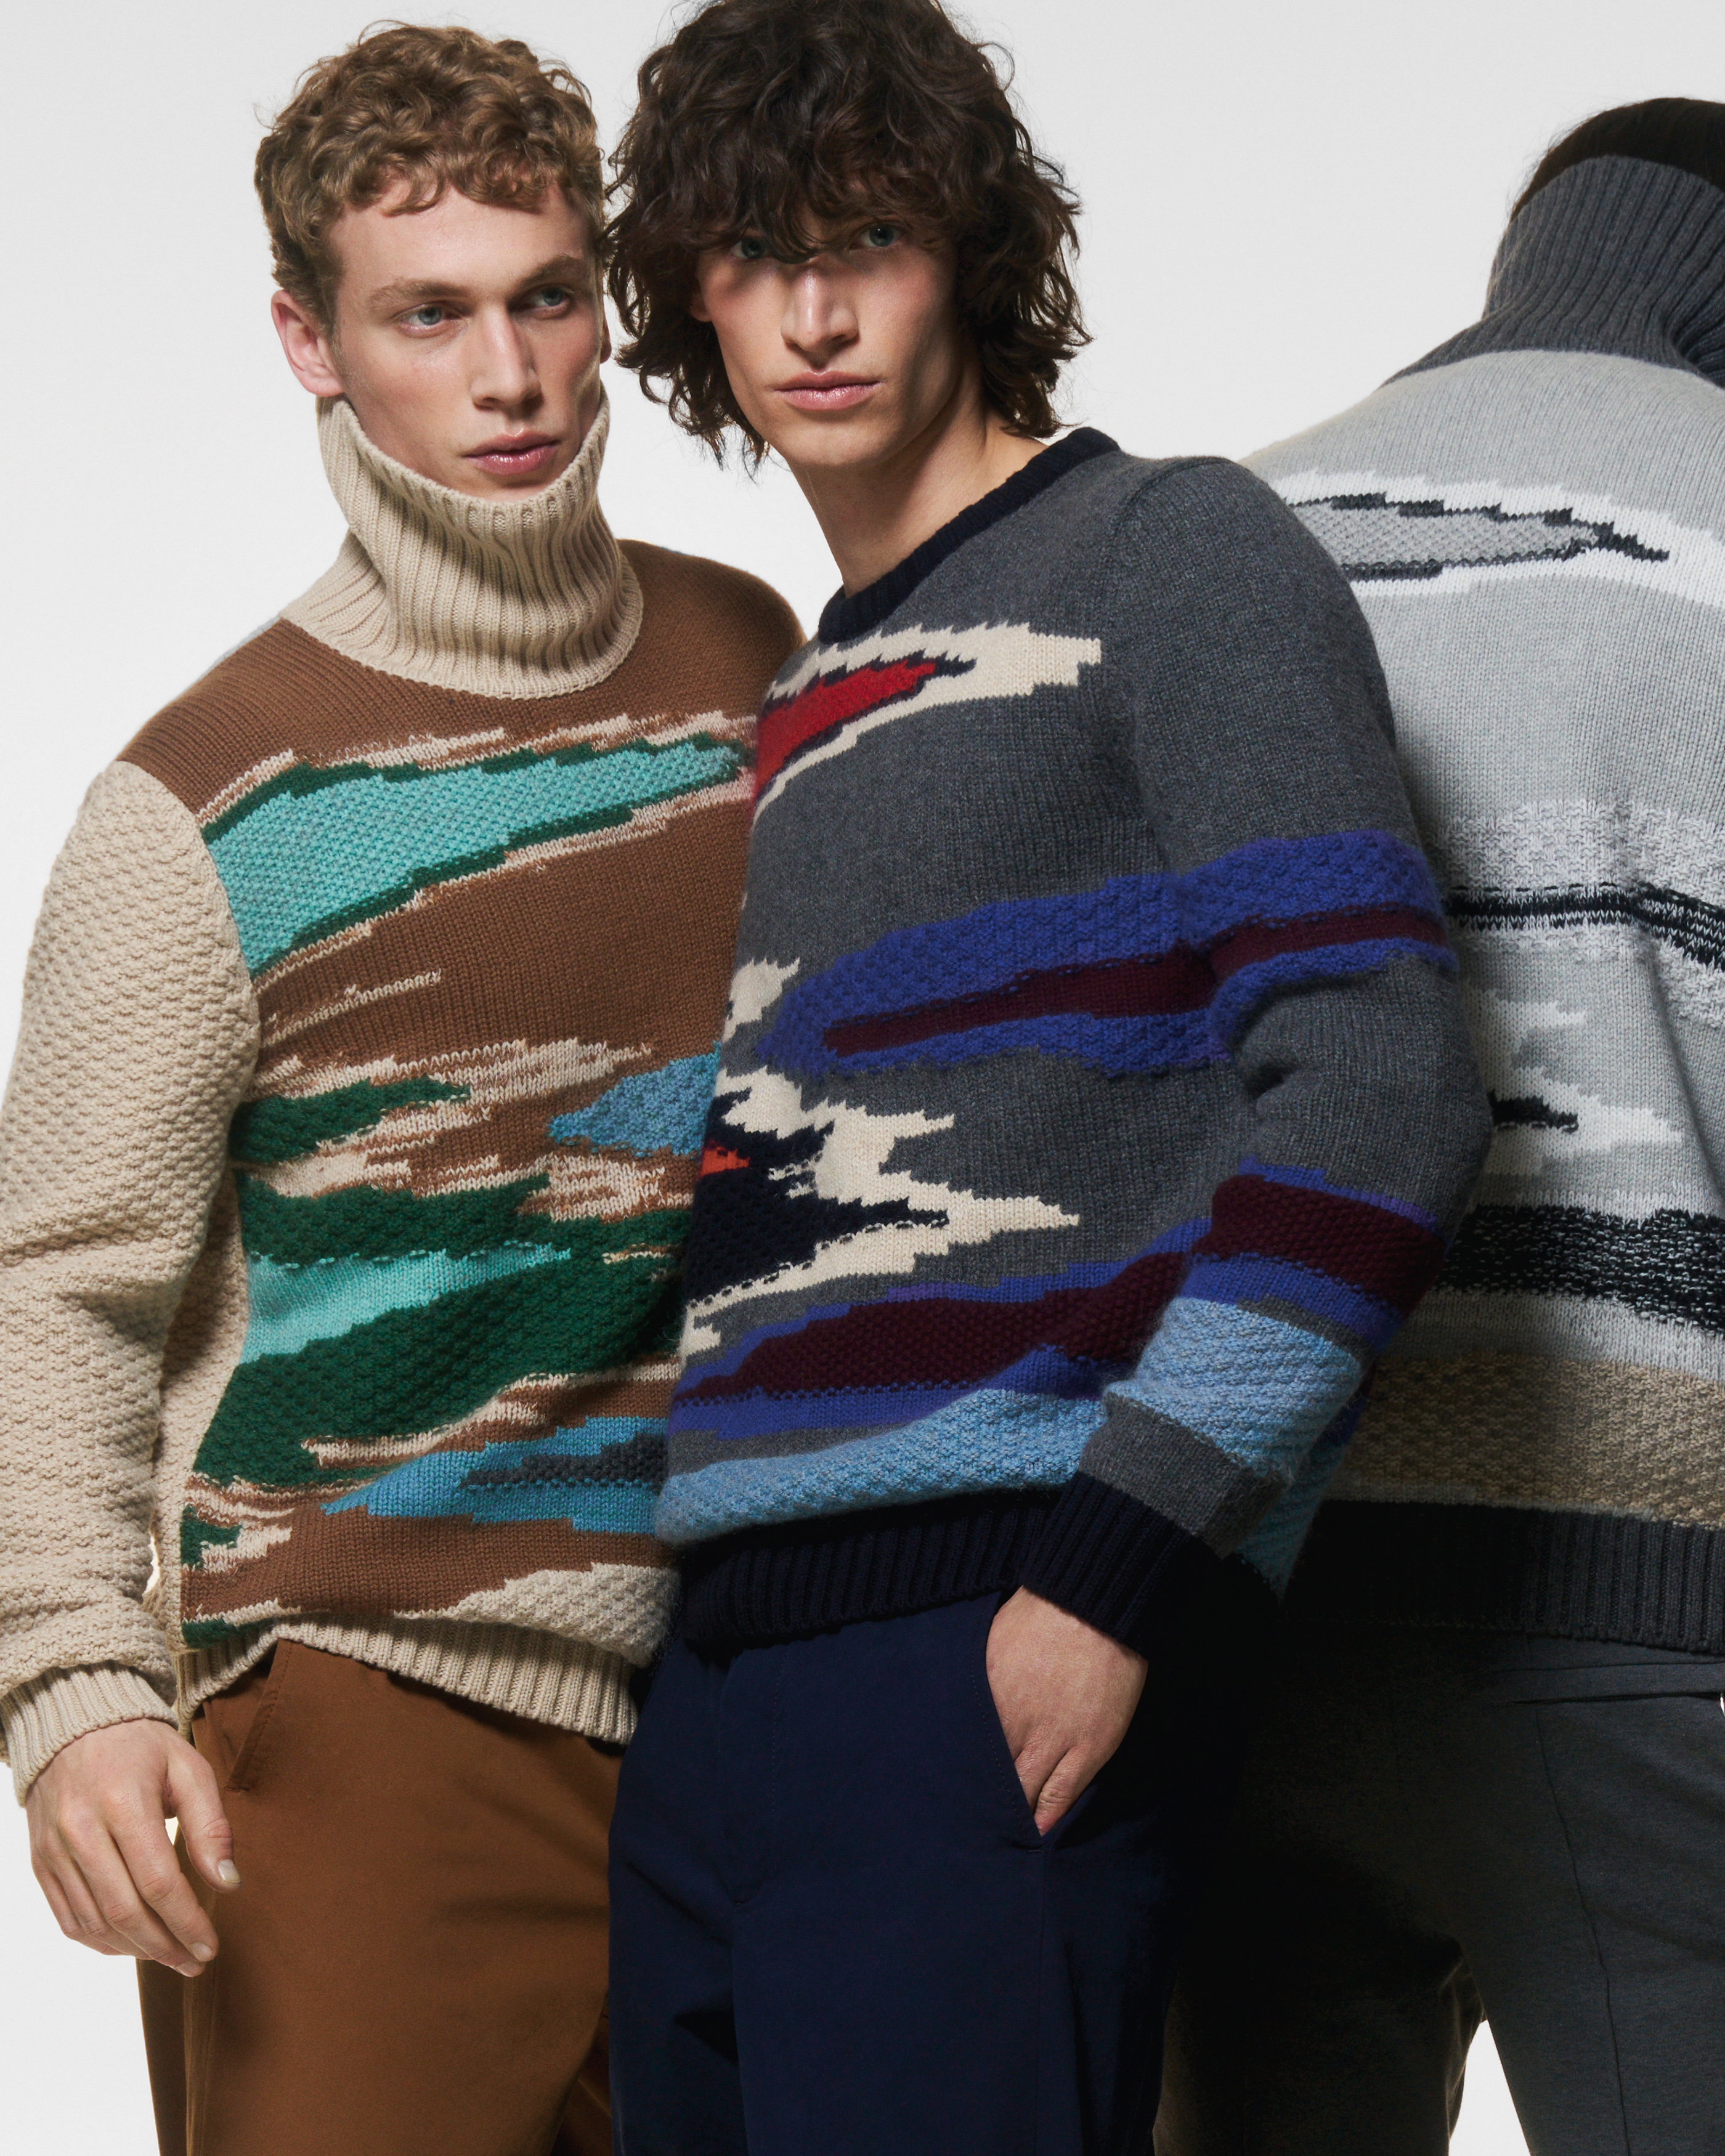 Missoni Men's Fall 2021